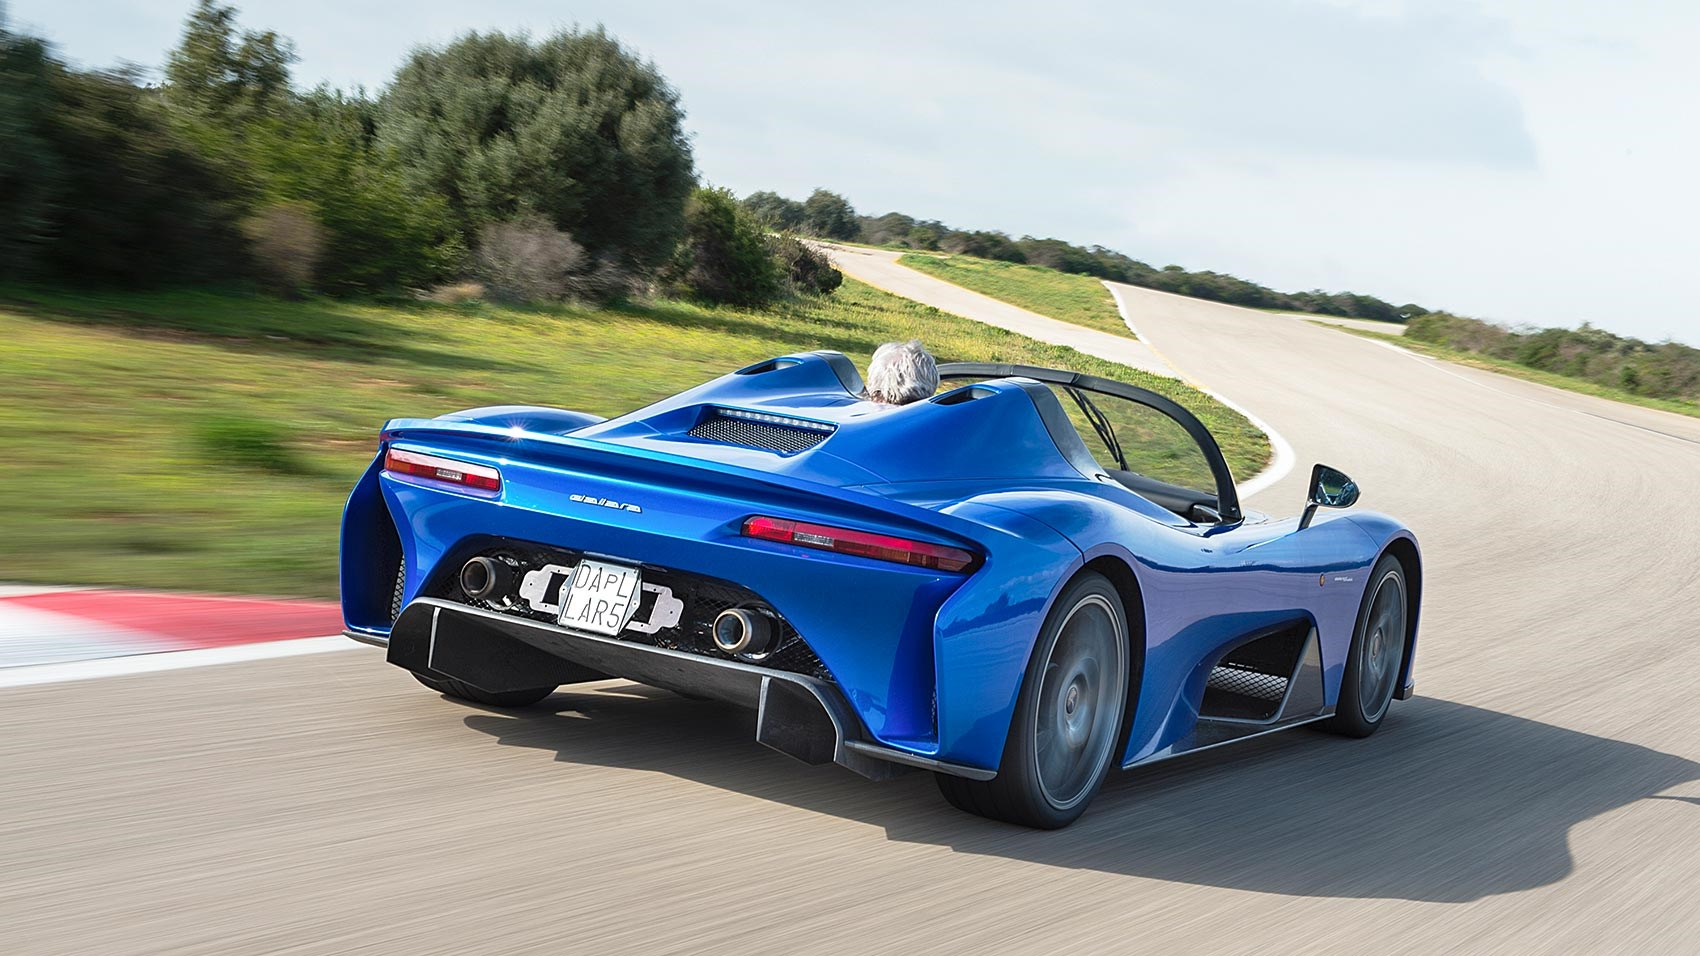 Dallara Stradale review, specs and UK prices from £166,000